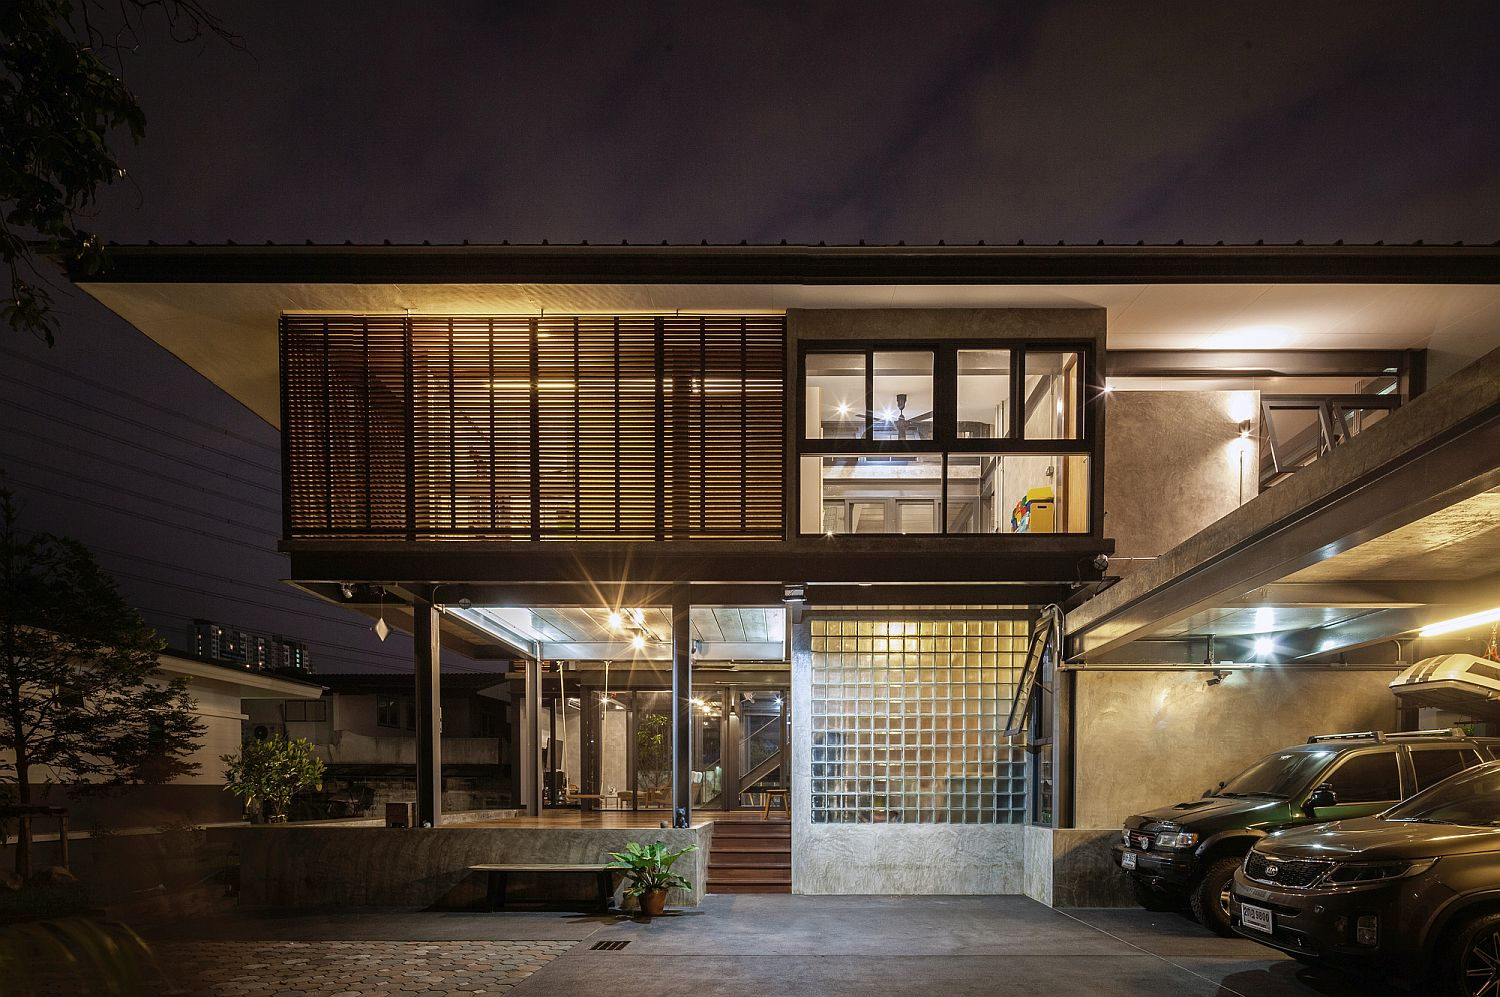 House-713-in-Bangkok-after-sunset